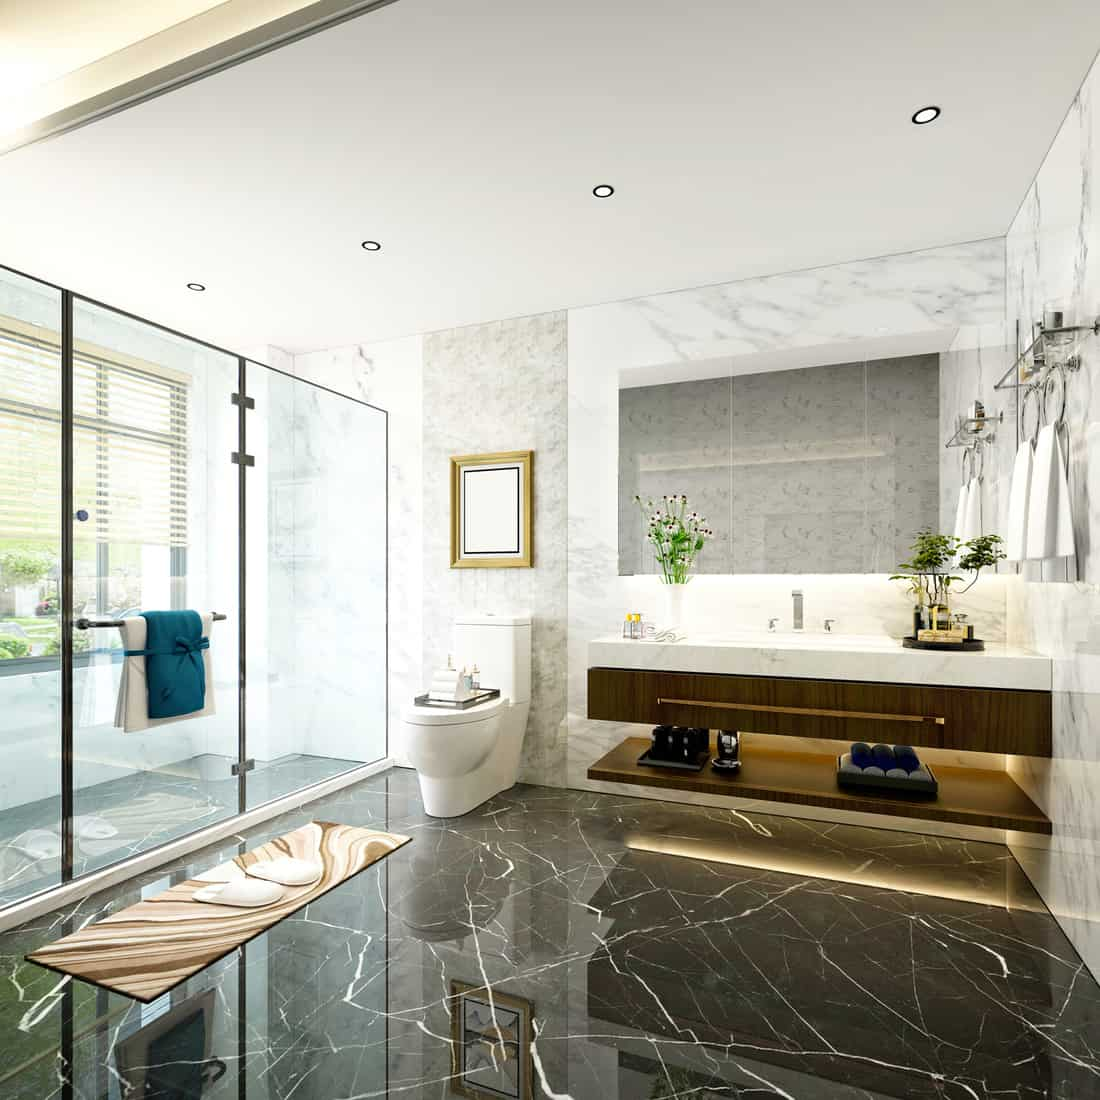 Luxury Bathroom with Gorgeous Framed Mirror In Addition To The Vanity Mirror